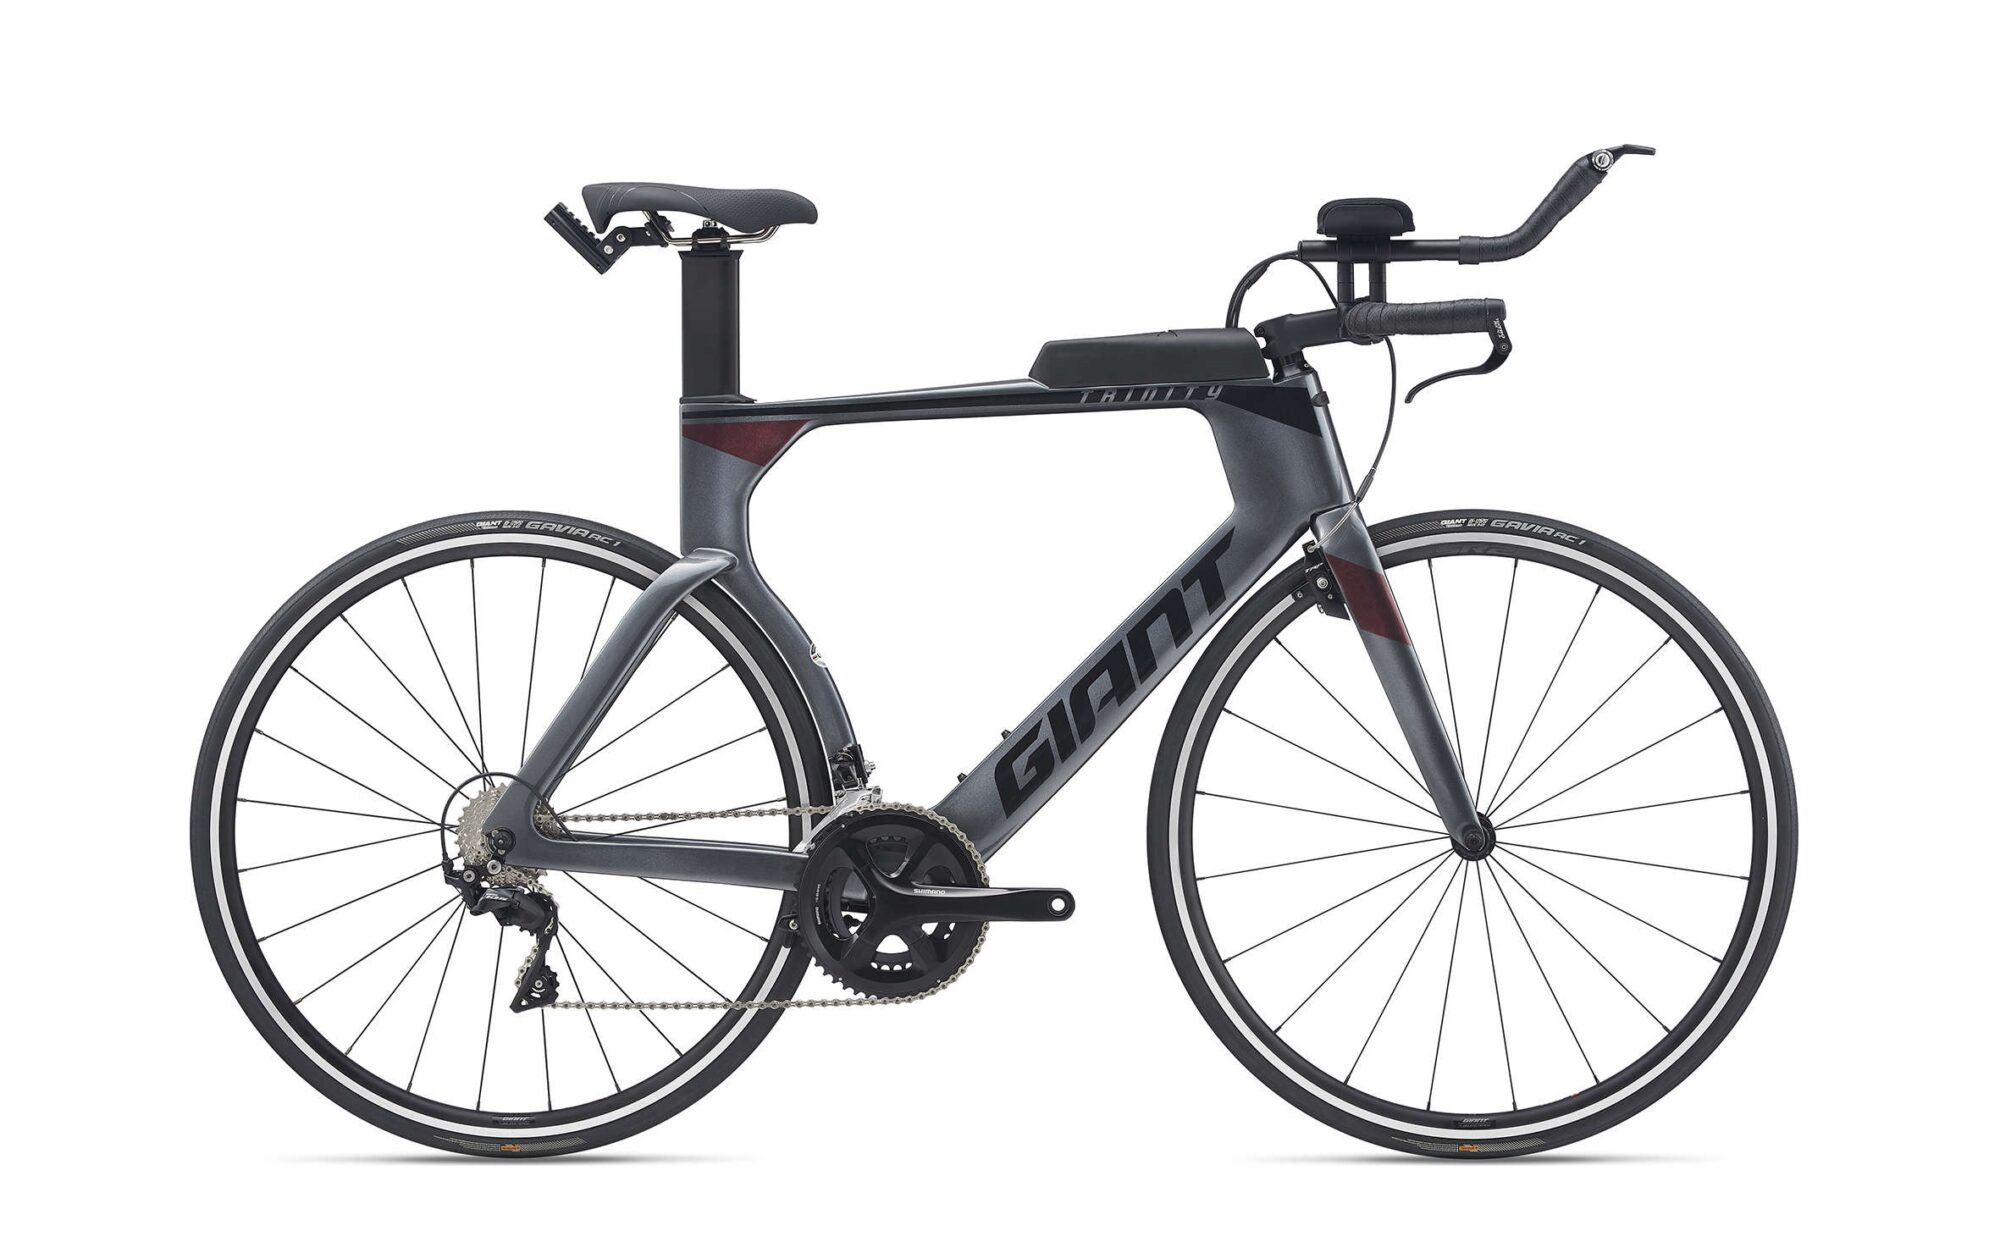 2021 Giant Trinity Triathlon Bike